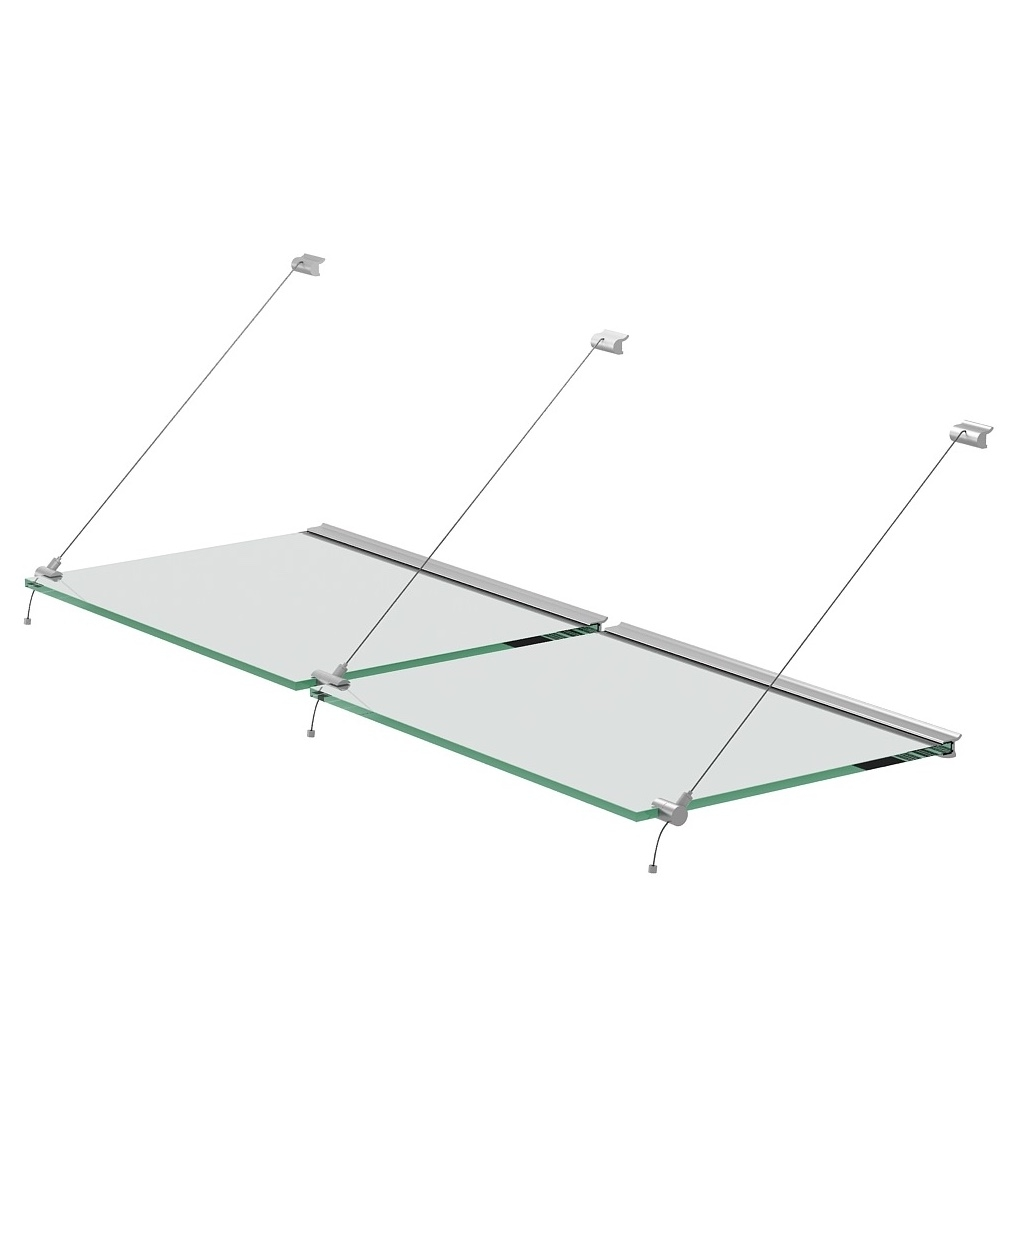 Suspended Glass Shelving Systems Design Modern Shelf Storage And In Wire Suspended Glass Shelves (View 5 of 12)